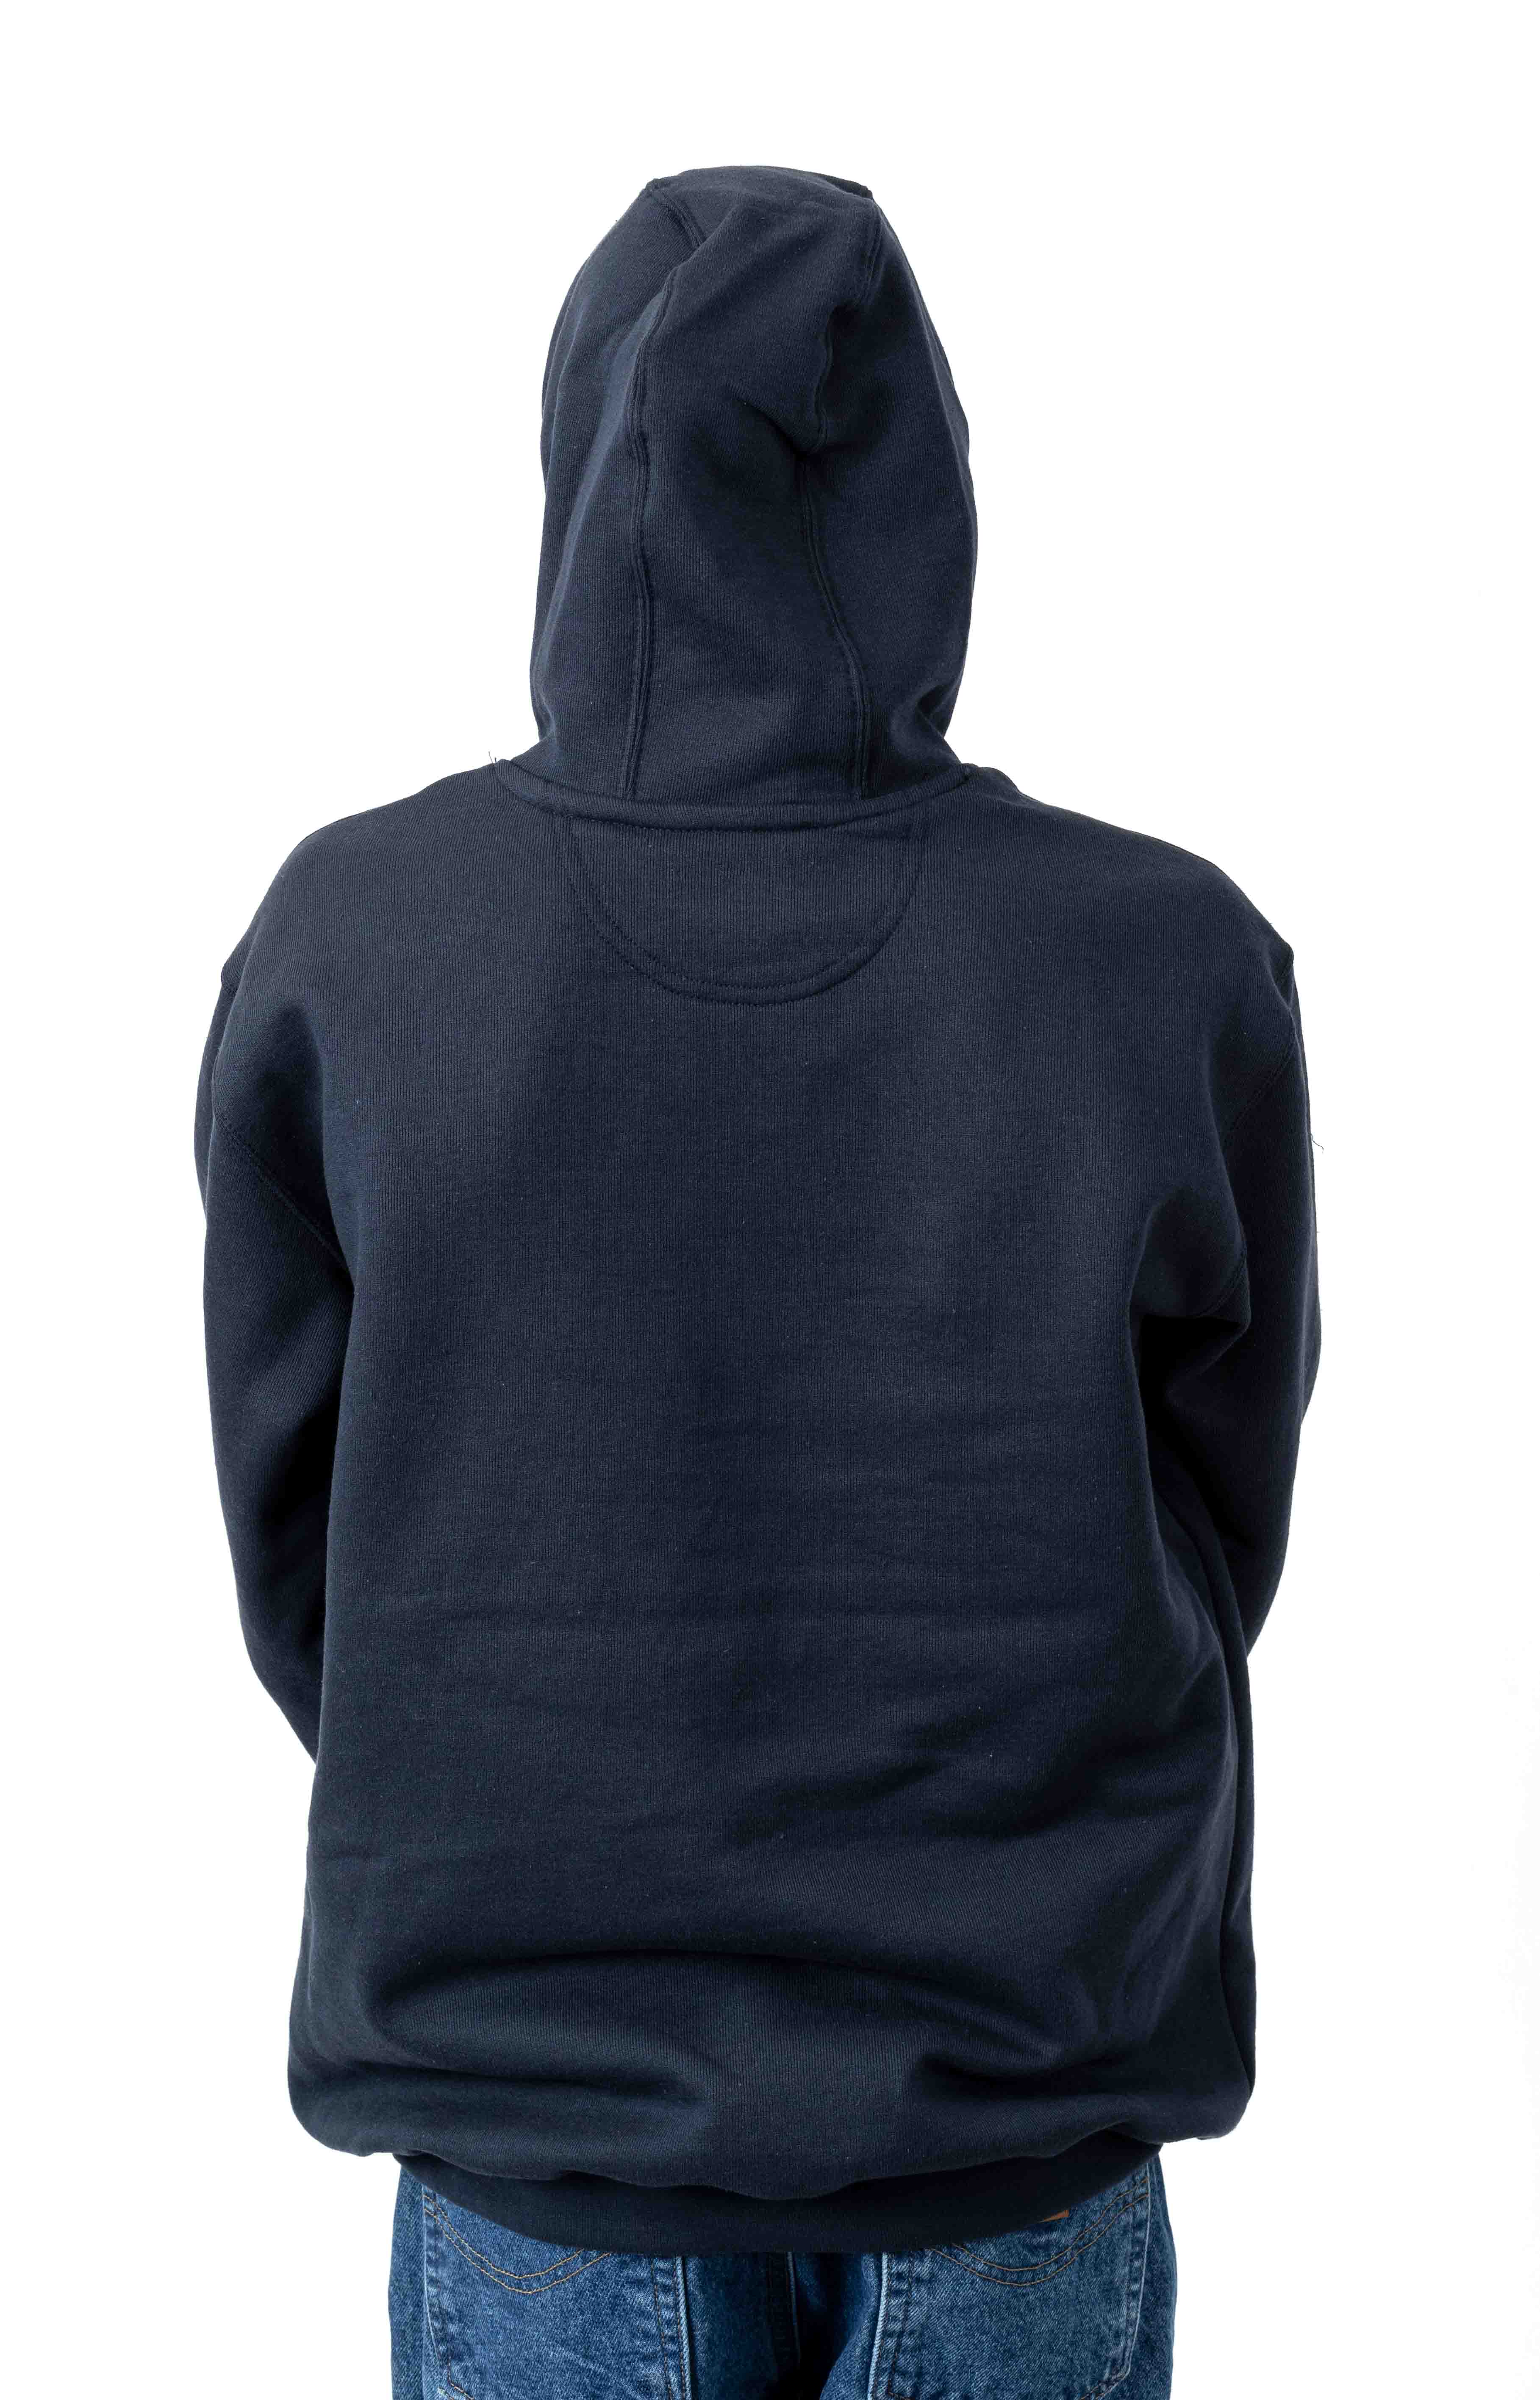 (K121) Midweight Pullover Hoodie - New Navy 3